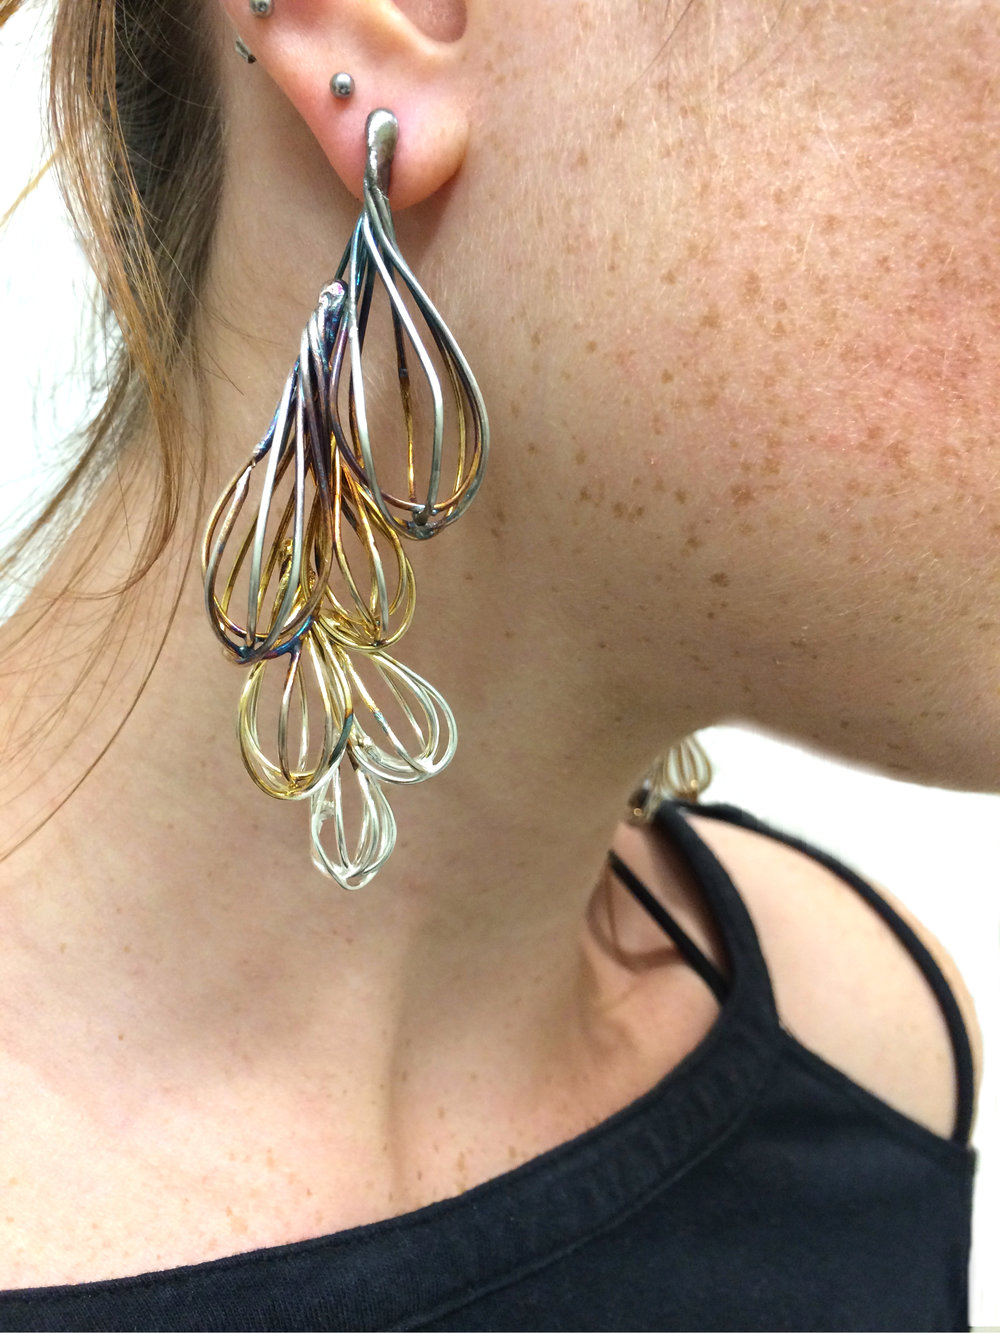 Effervescence Earrings 1 (on body)